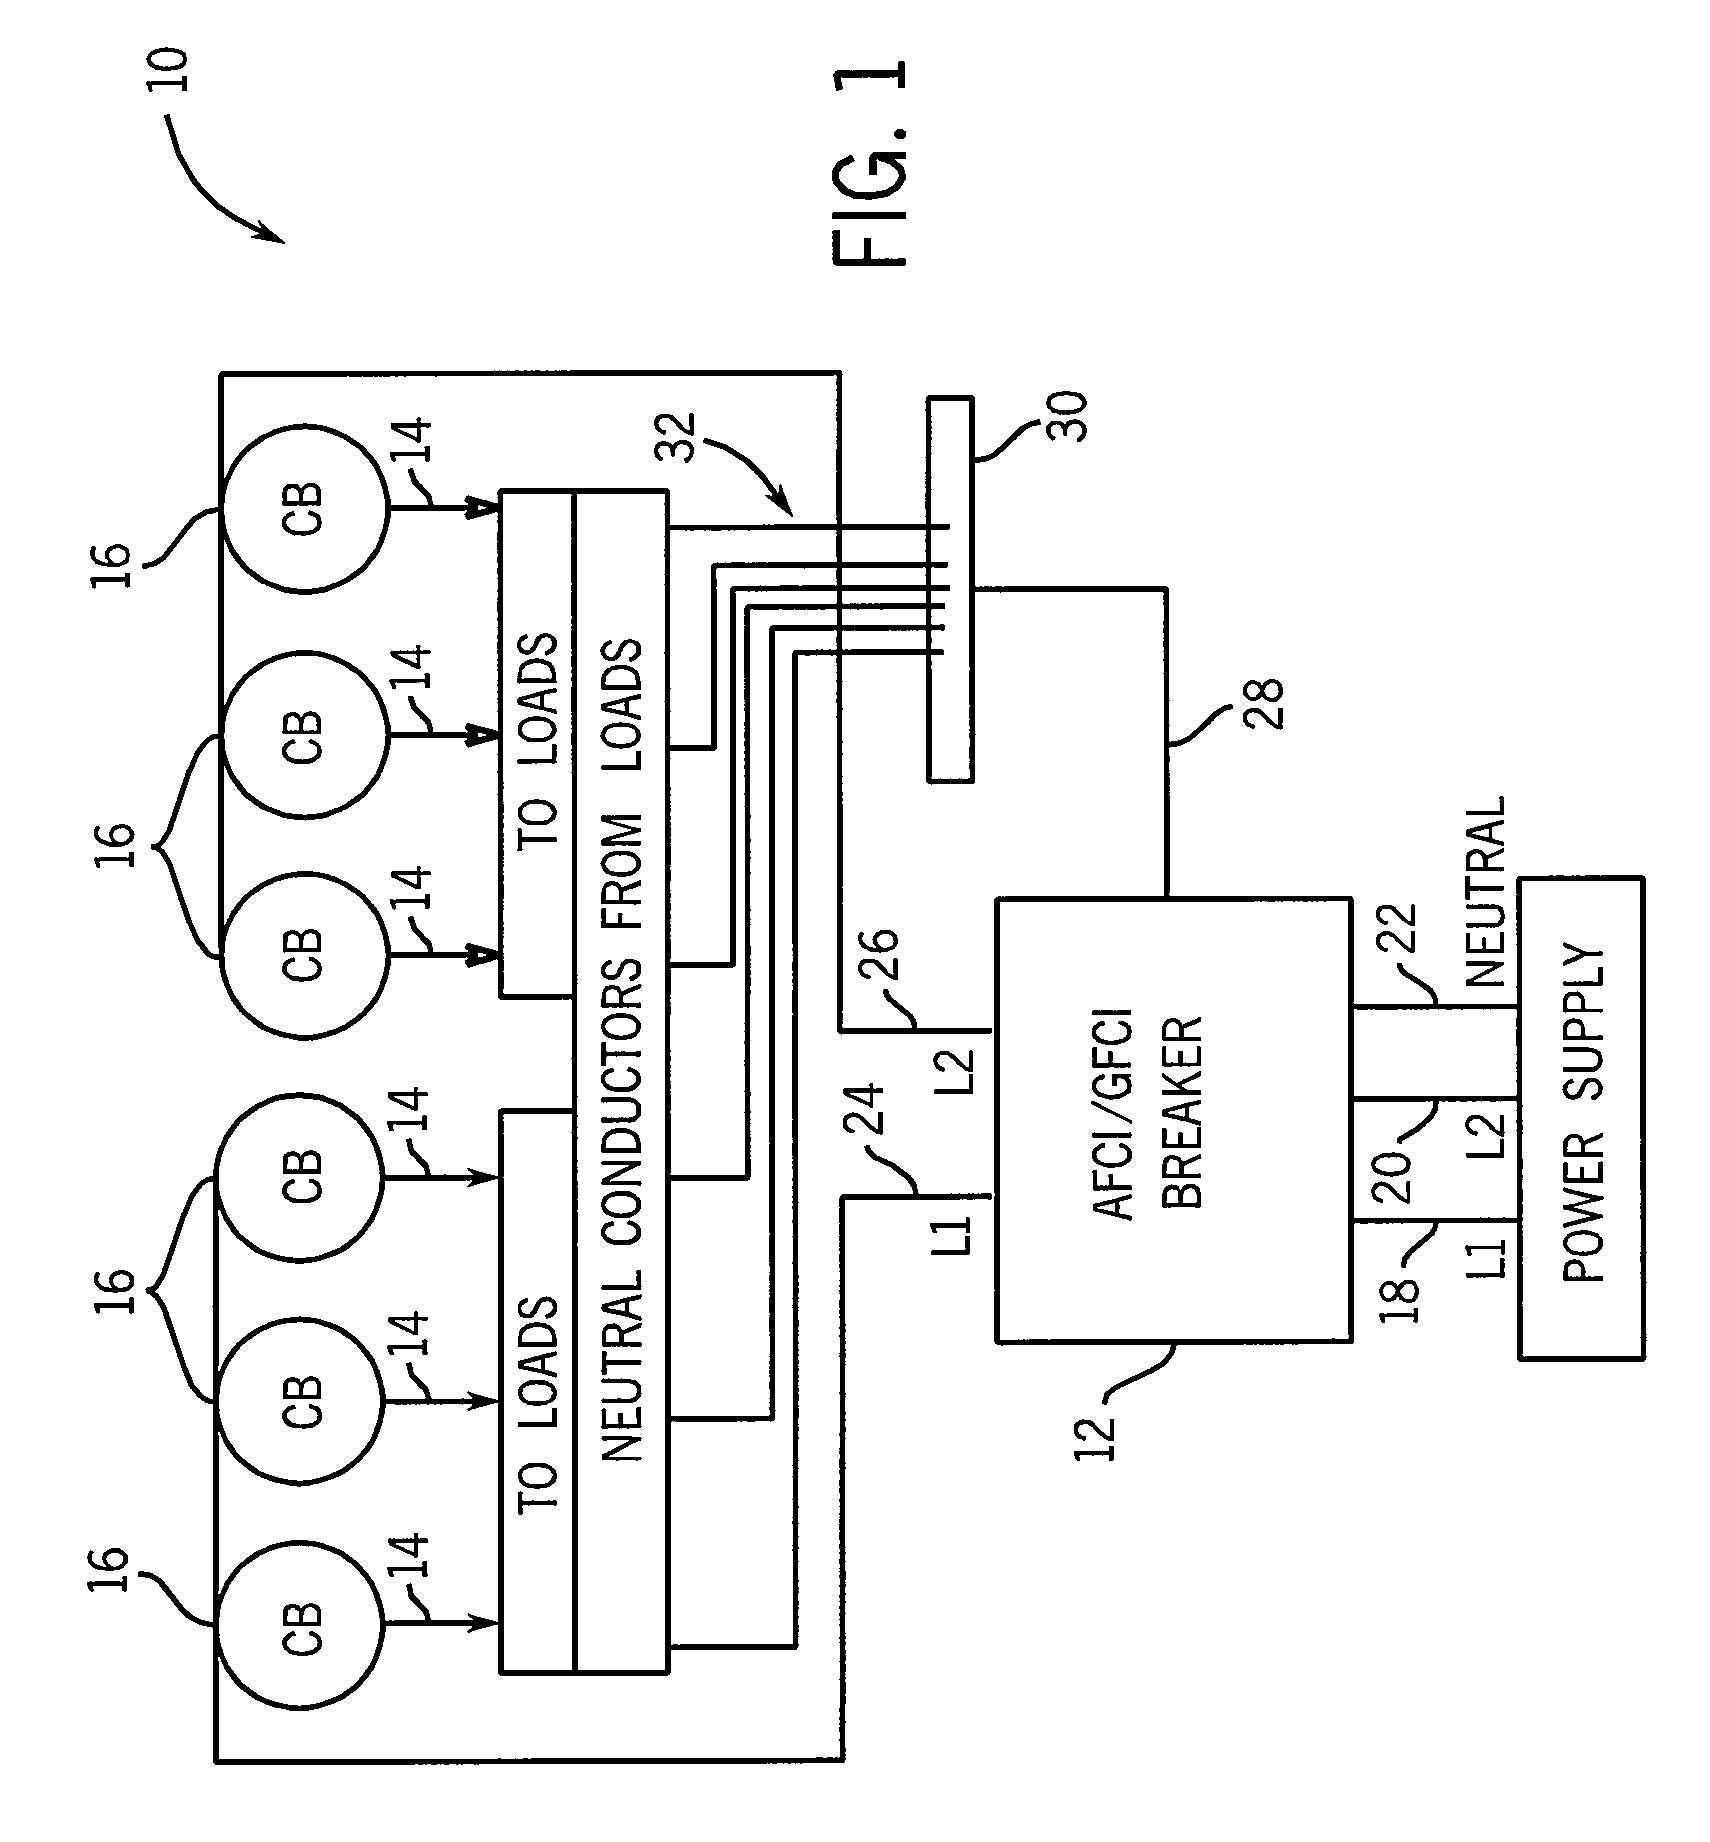 afci breaker providing protection for multiple branch circuits